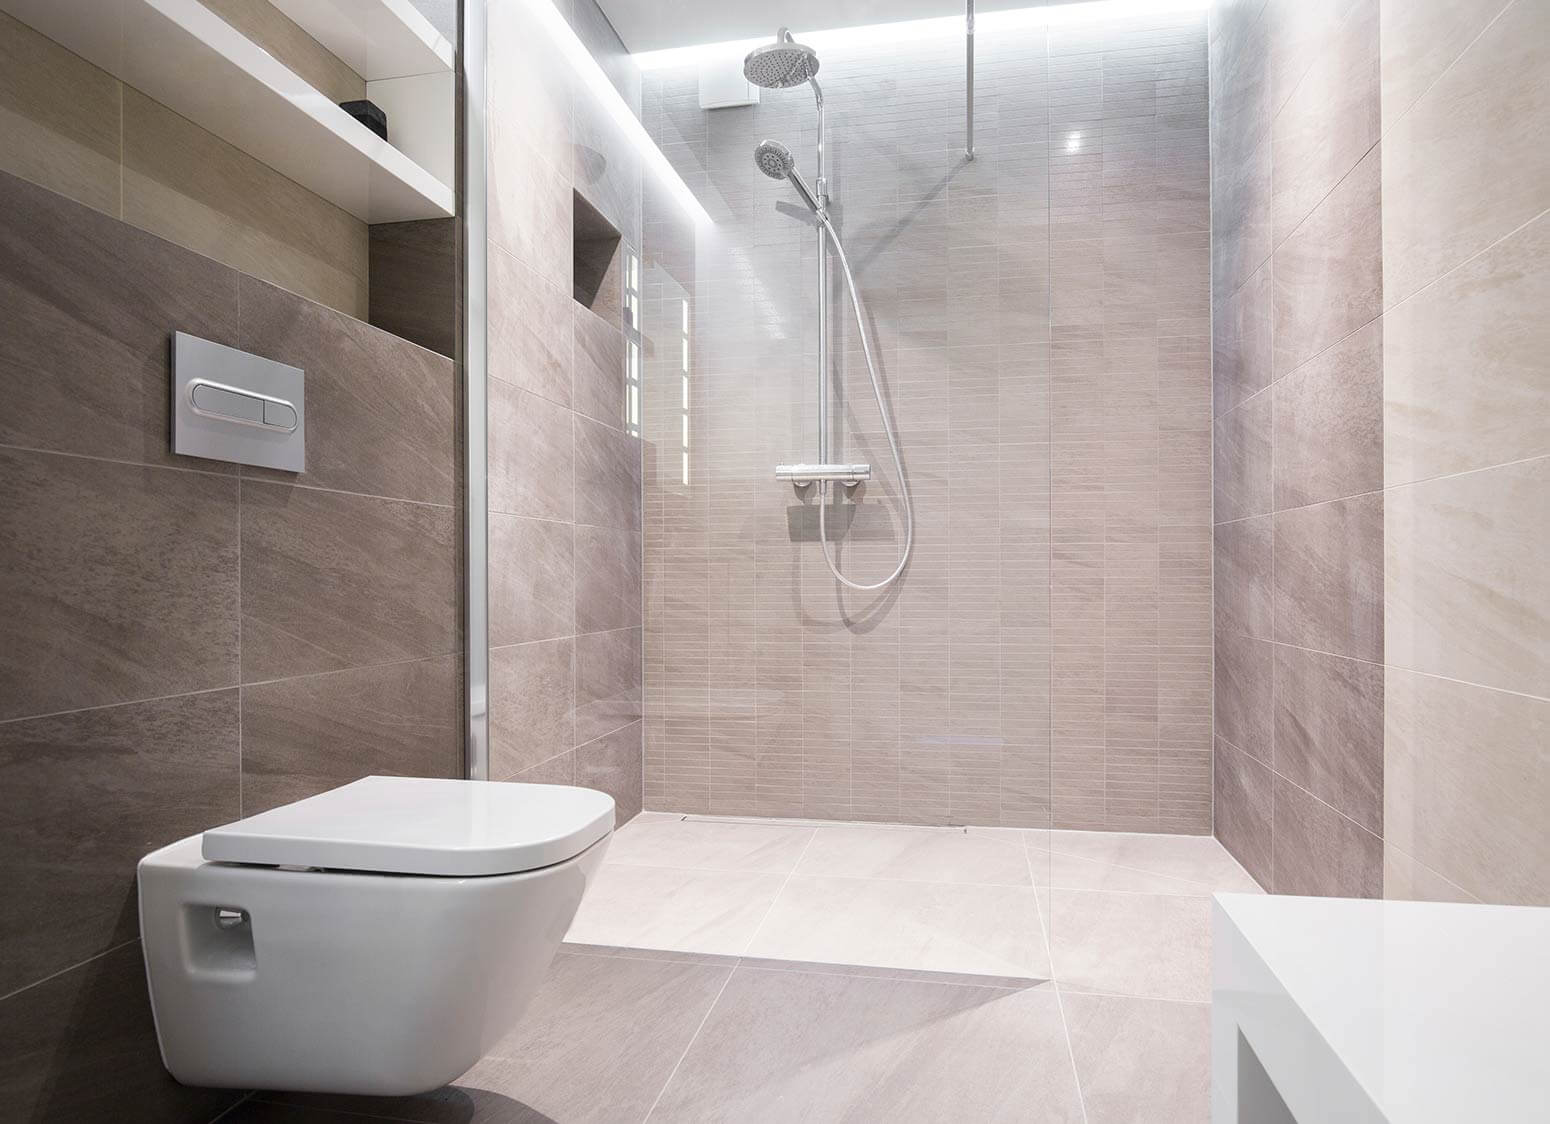 Wet Rooms Scunthorpe Wet Room Scunthorpe Wet Room Design Scunthorpe